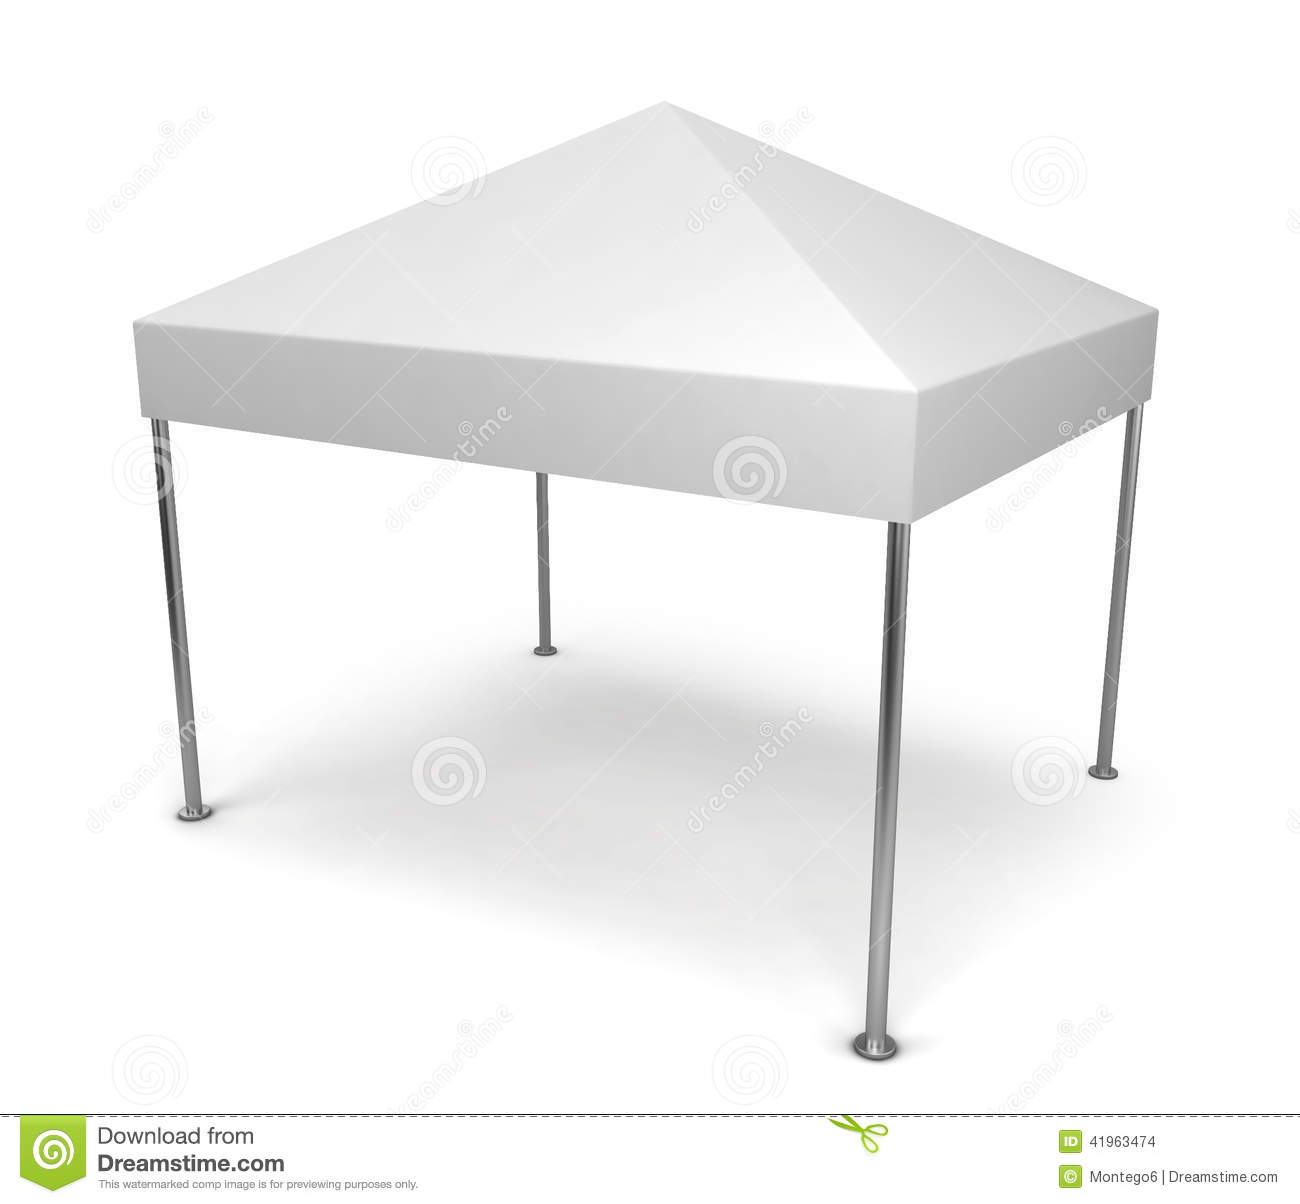 Canopy tent. Illustration commercial.  sc 1 st  Dreamstime.com & Canopy tent stock illustration. Illustration of illustration ...